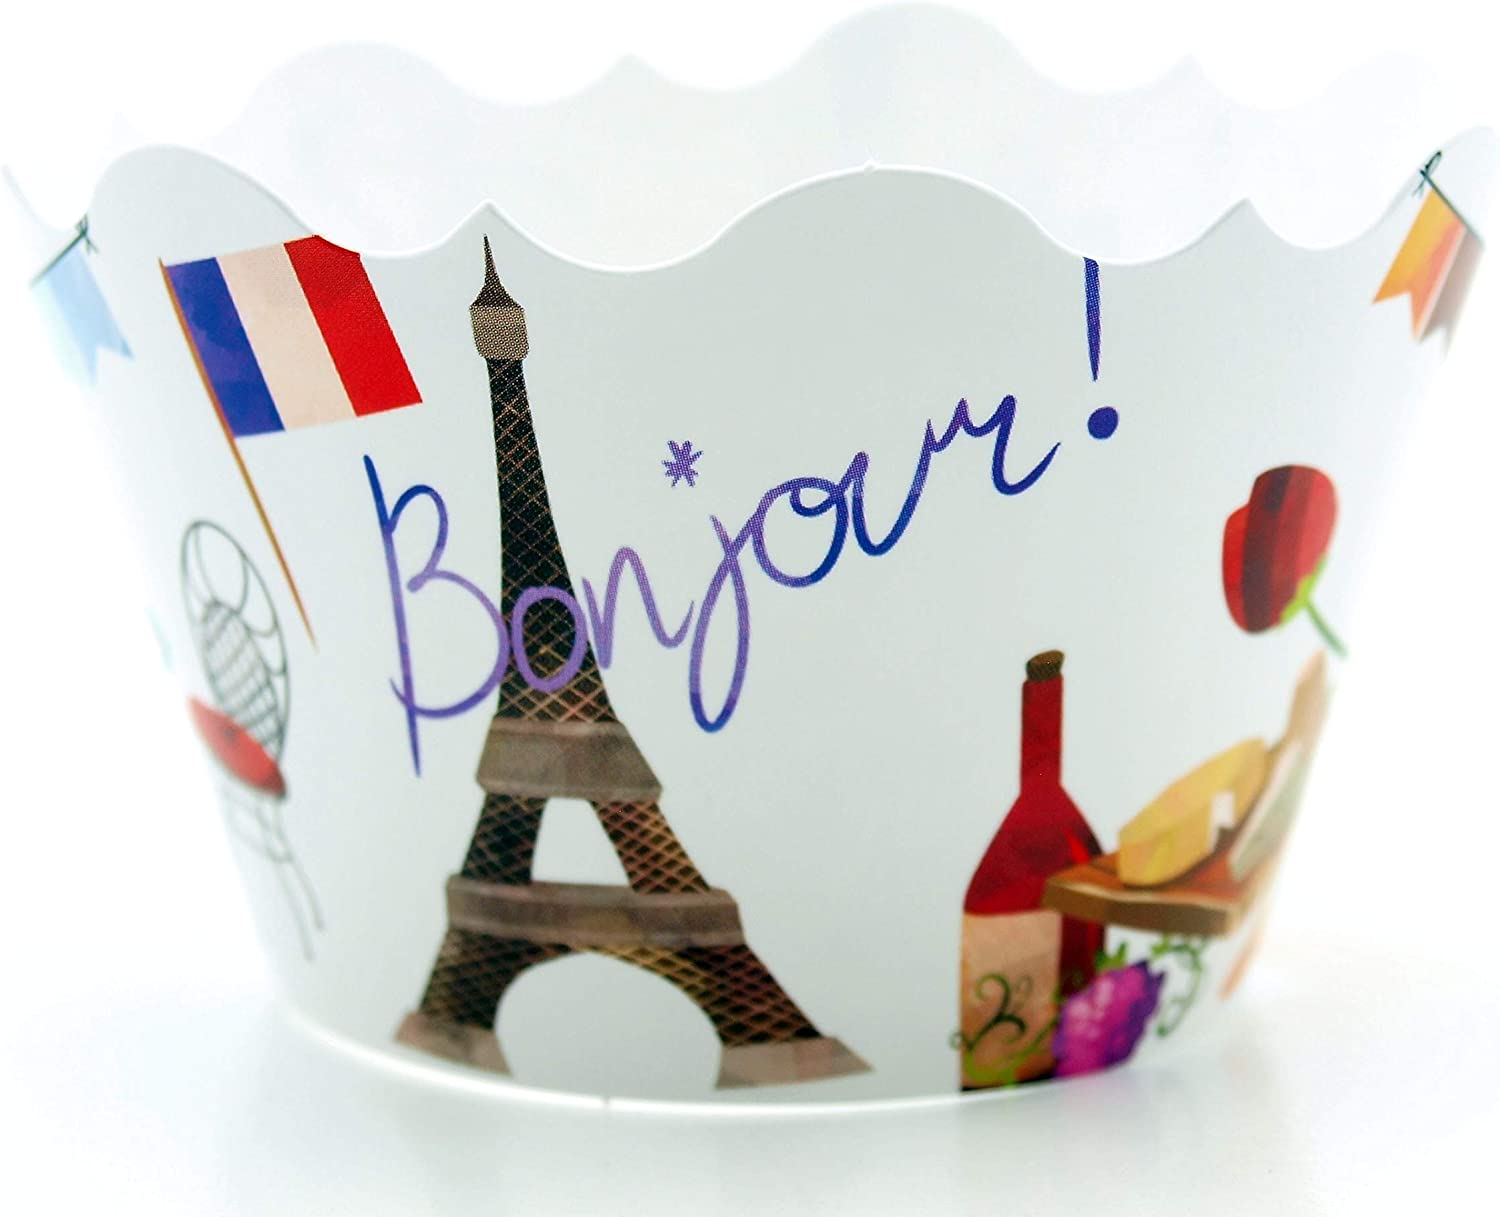 Paris France Party Supplies Cupcake Wrappers (12 Pack) - French Birthday Decorations, Parisian Tea Party Garden Table Decor & Oui! Oui! Eiffel Tower Party Favors